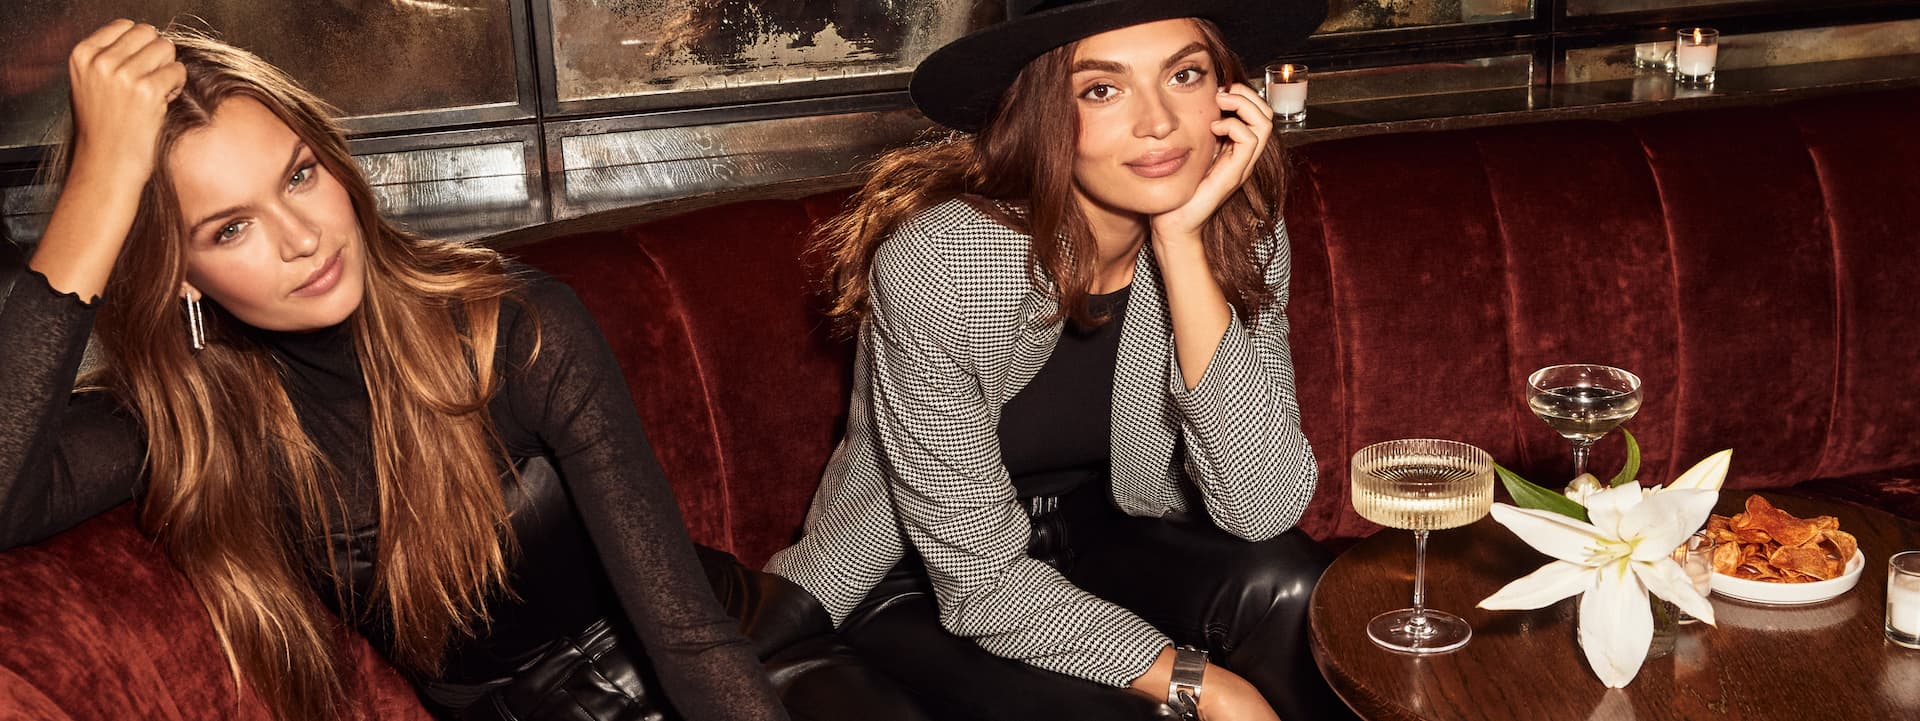 A model wears a sheer black long-sleeved top and faux leather pants. Another model wears a checked blazer and black hat.